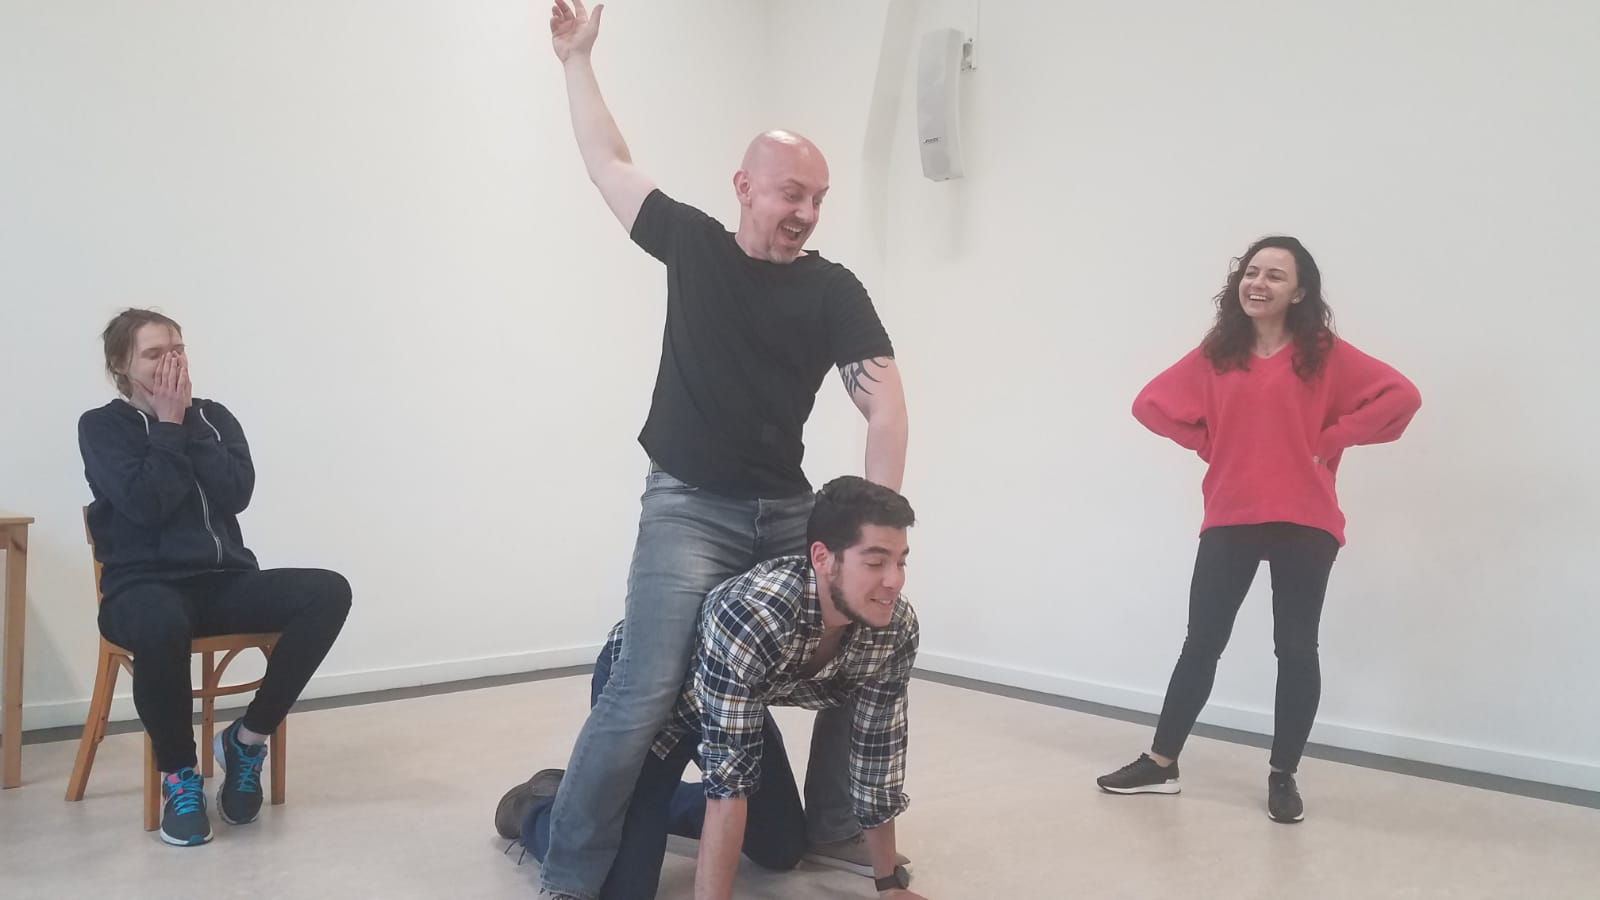 Acting Class Act Attack. Four people. One woman stands on the right, another sits on a chair, on the left, both laughing. Two men in the middle. One is on all fours, and the other one rides him, like a horse.